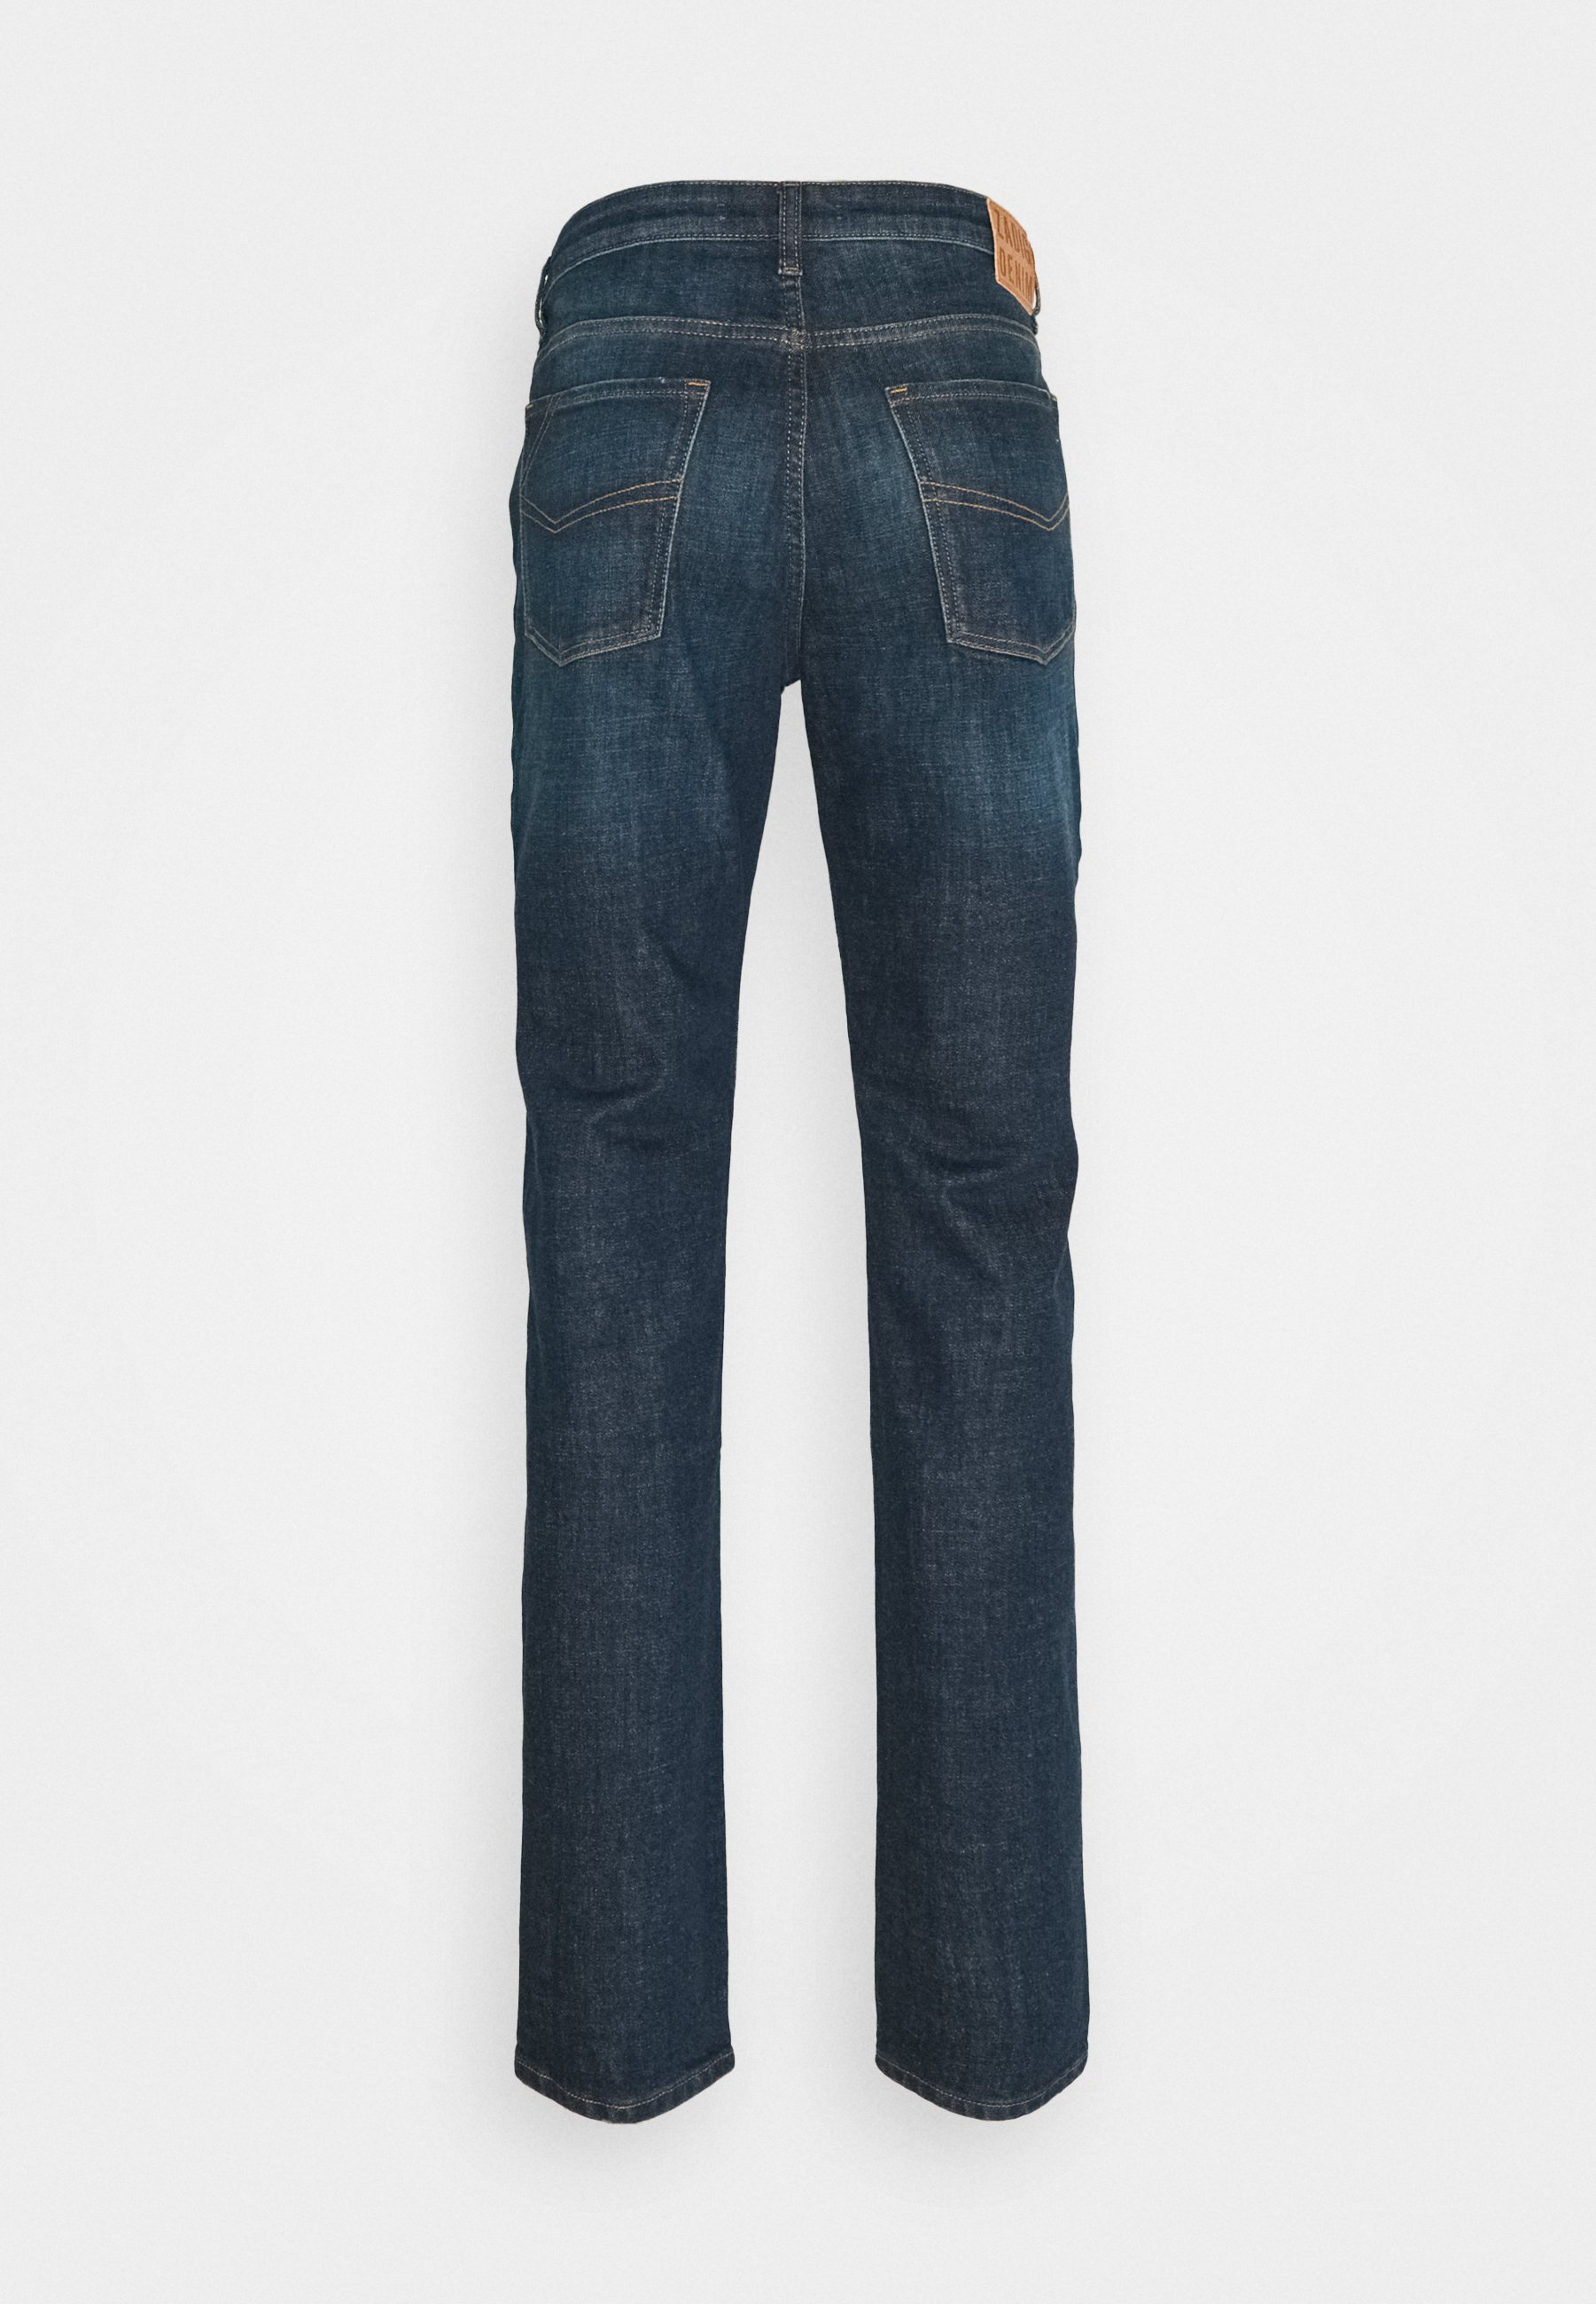 Zadig & Voltaire David Eco Old - Jeans Slim Fit Bleu